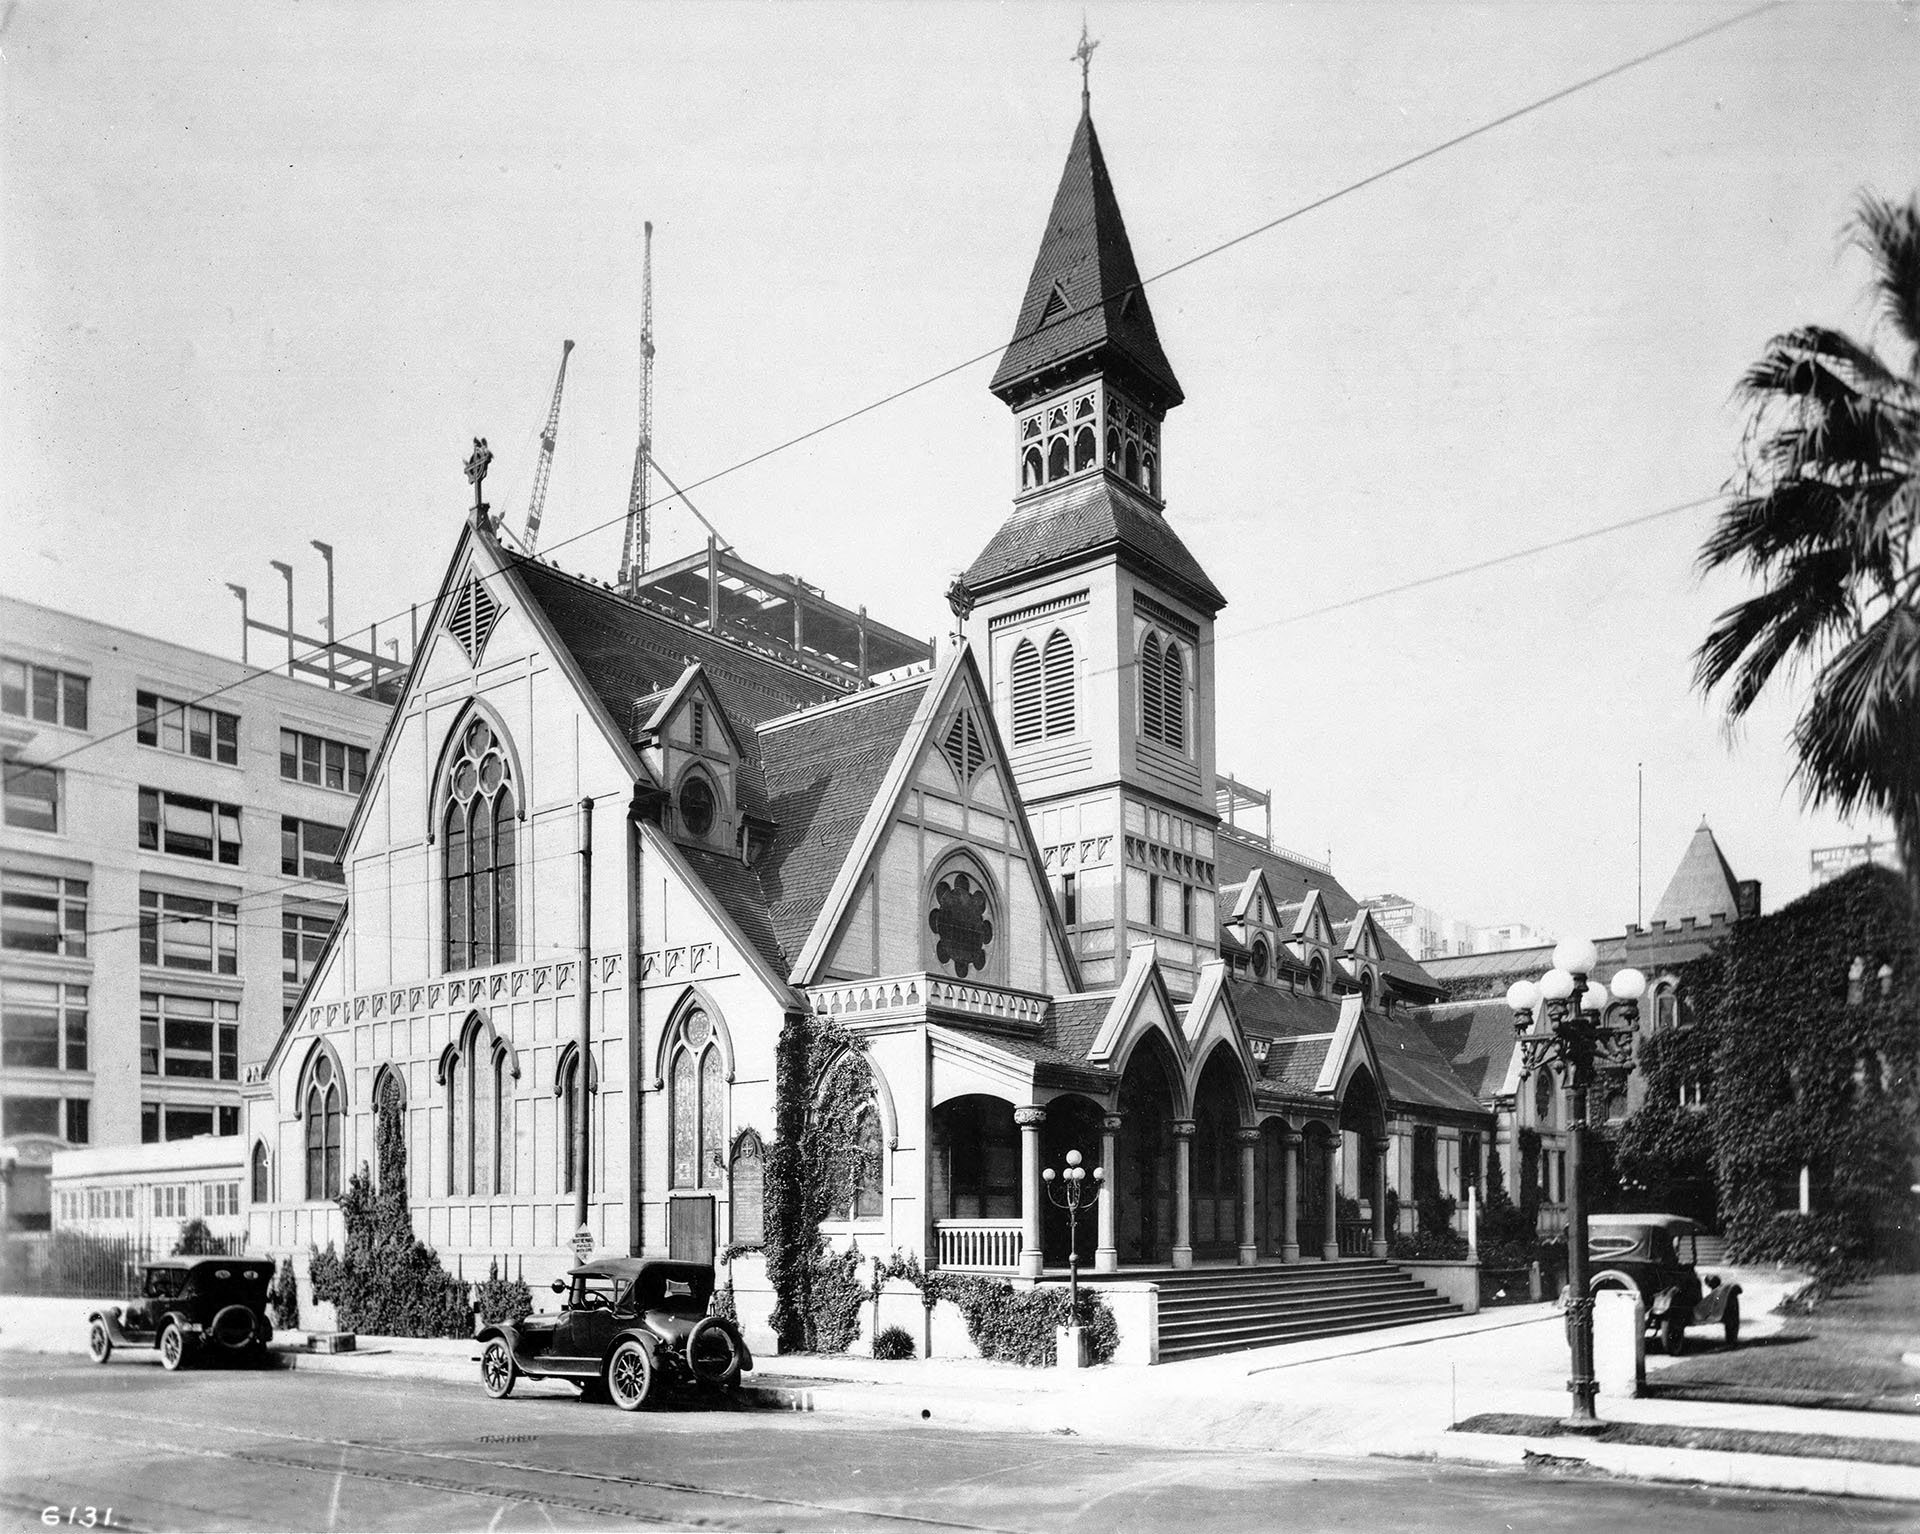 Exterior view of St. Paul's Episcopal Church on the west side of Pershing Square, which is now the present site of the Biltmore Hotel, ca.1920